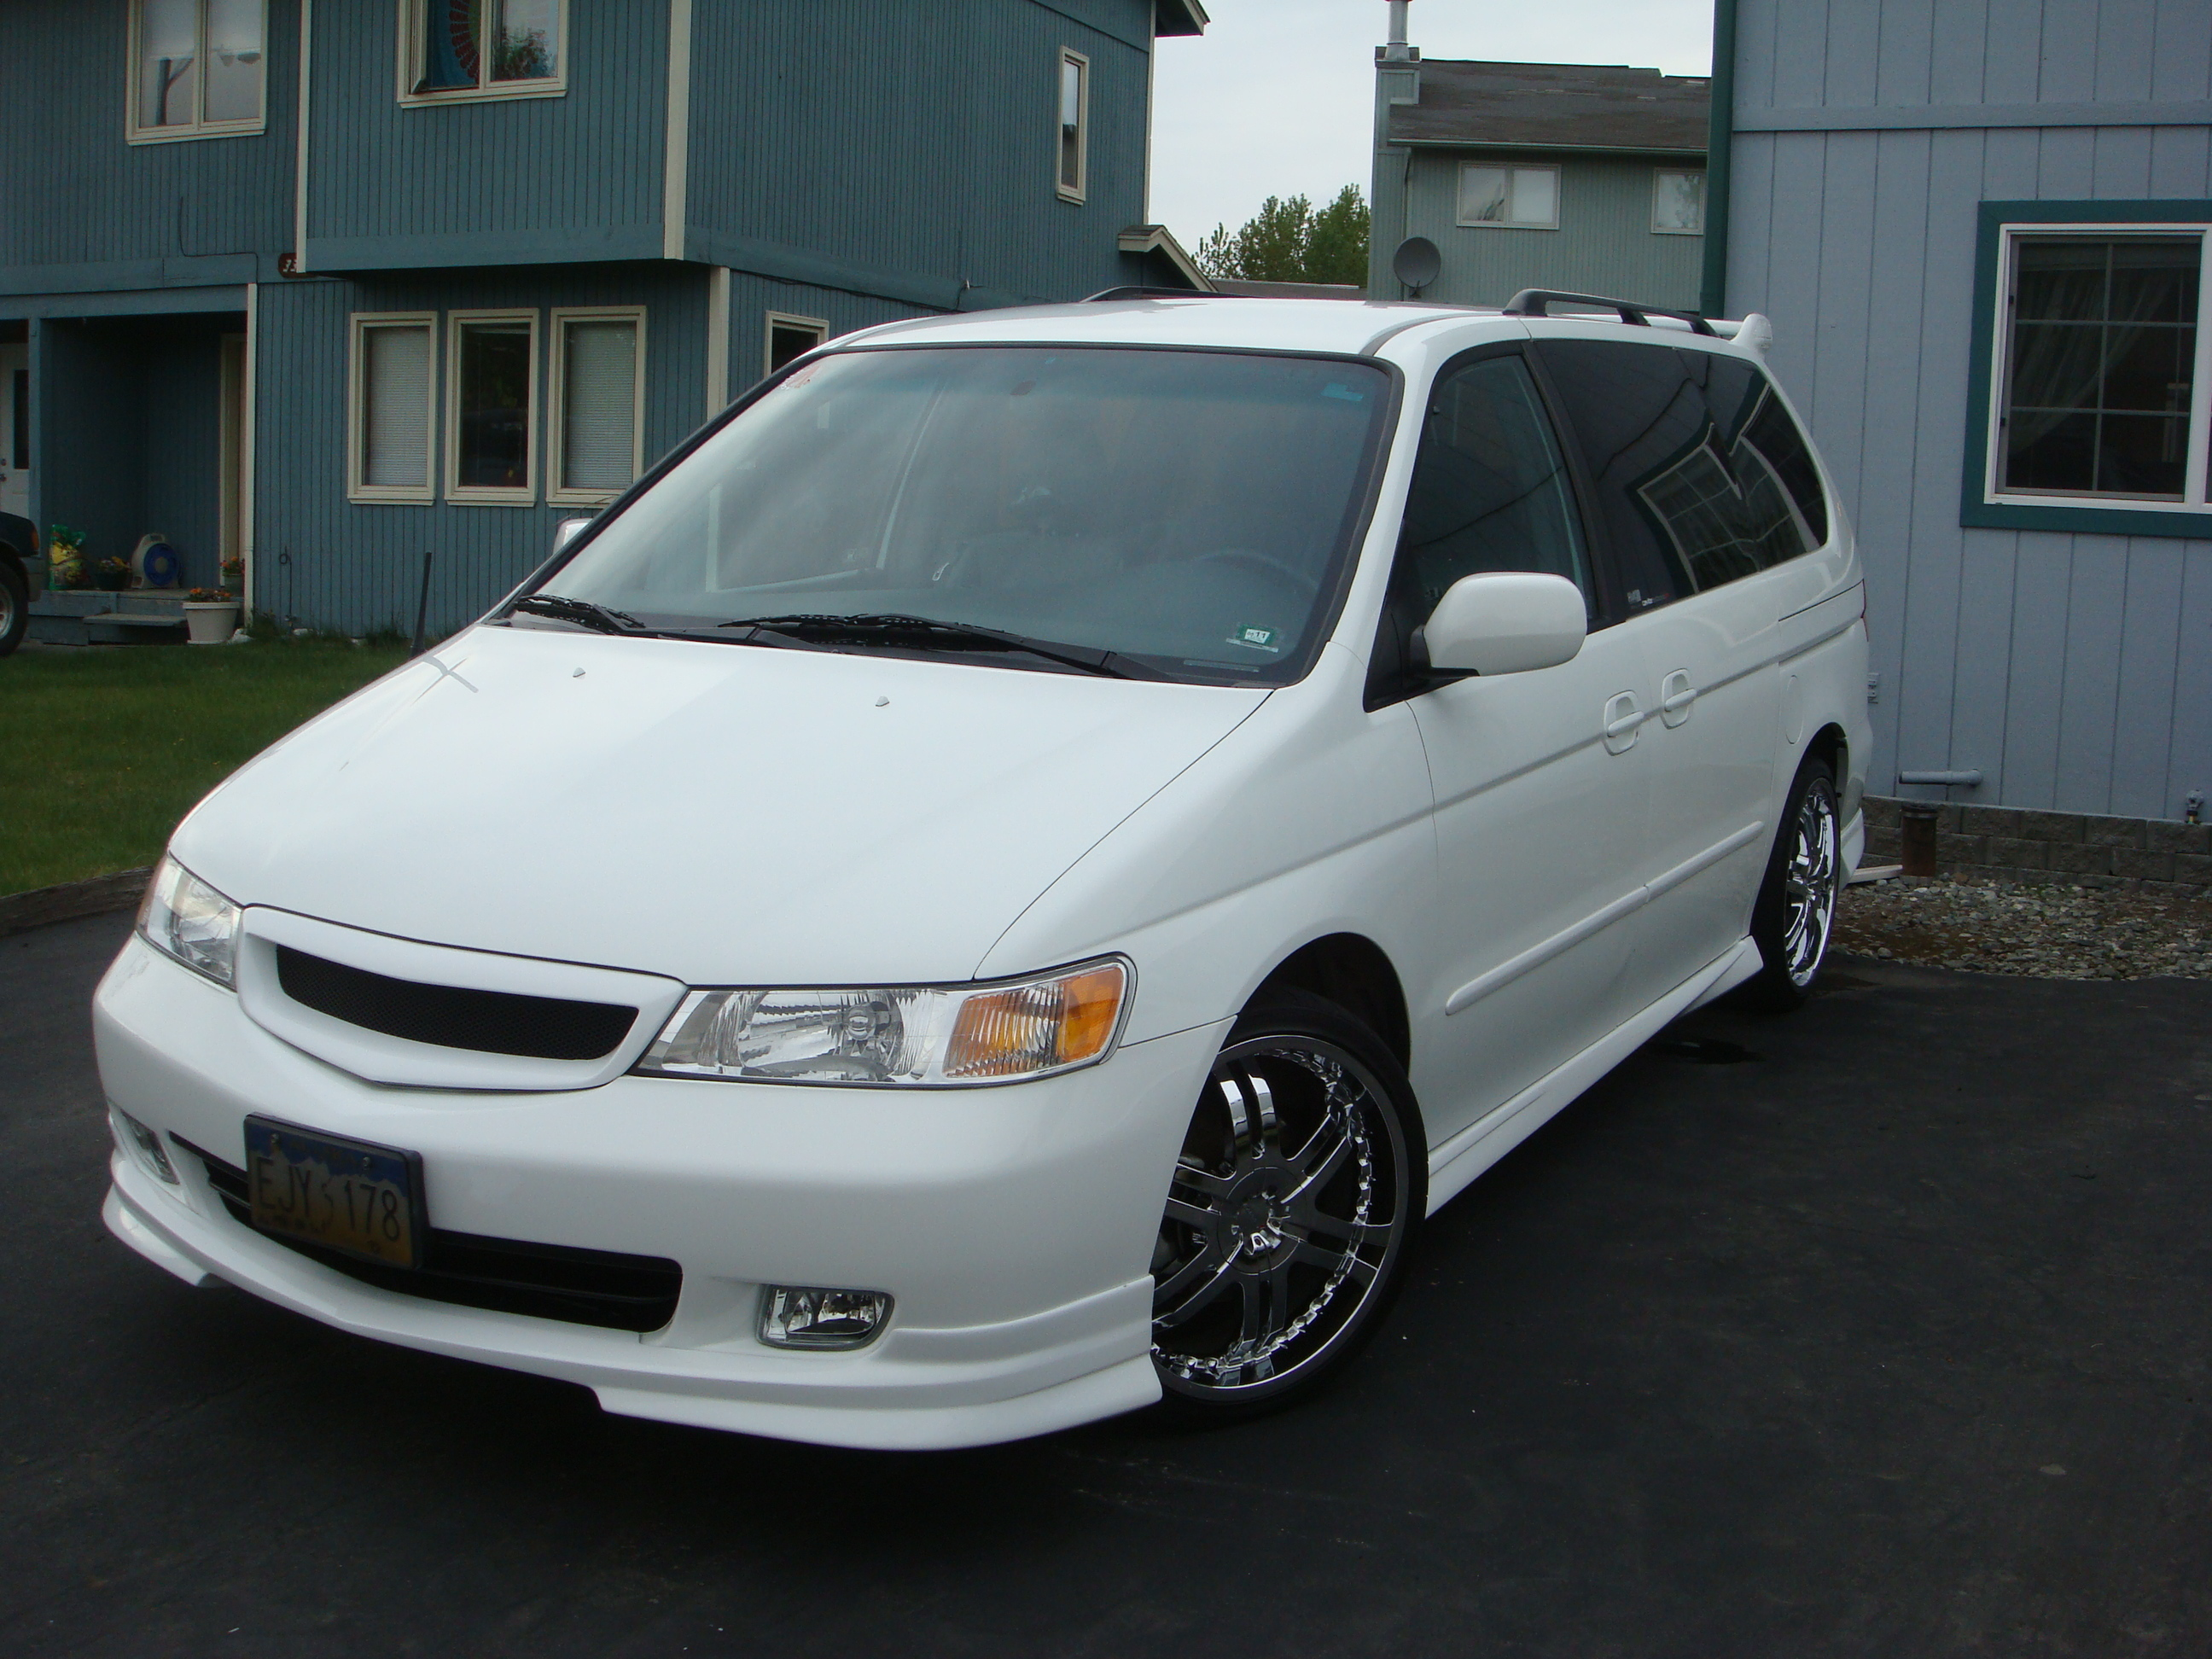 reymerus 2003 honda odyssey specs photos modification. Black Bedroom Furniture Sets. Home Design Ideas